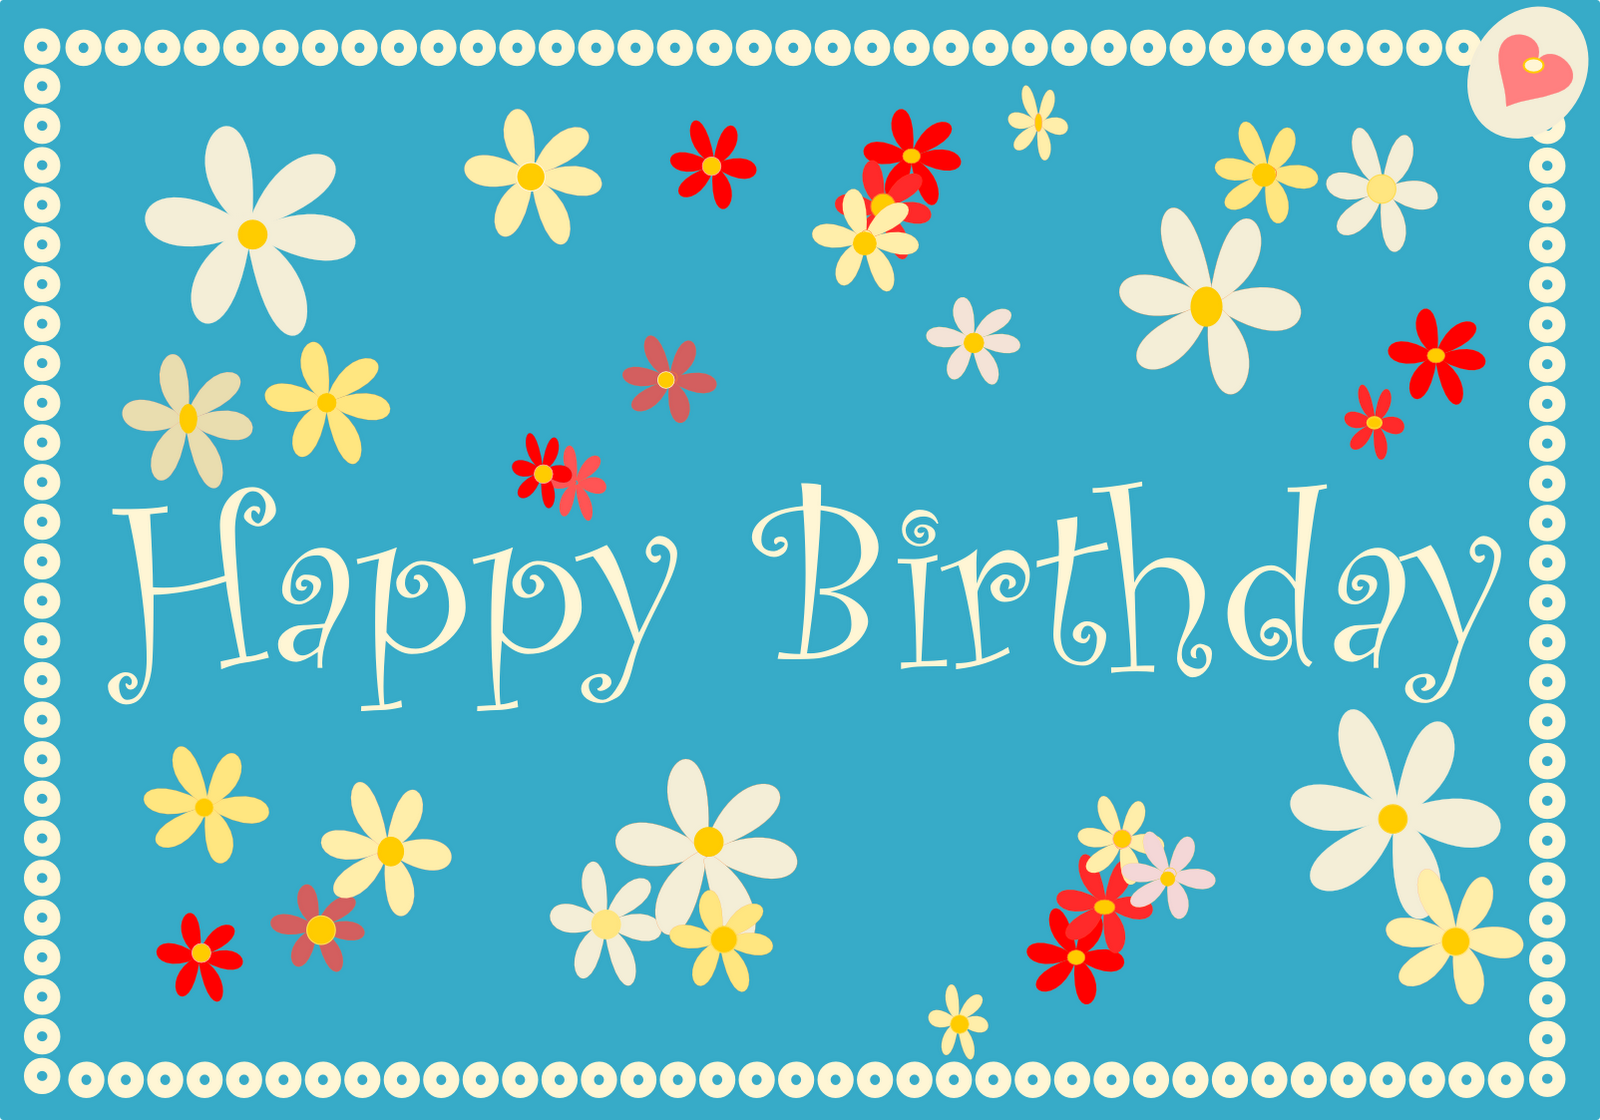 Happy birthday cards 2 coloring kids happy birthday cards bookmarktalkfo Choice Image